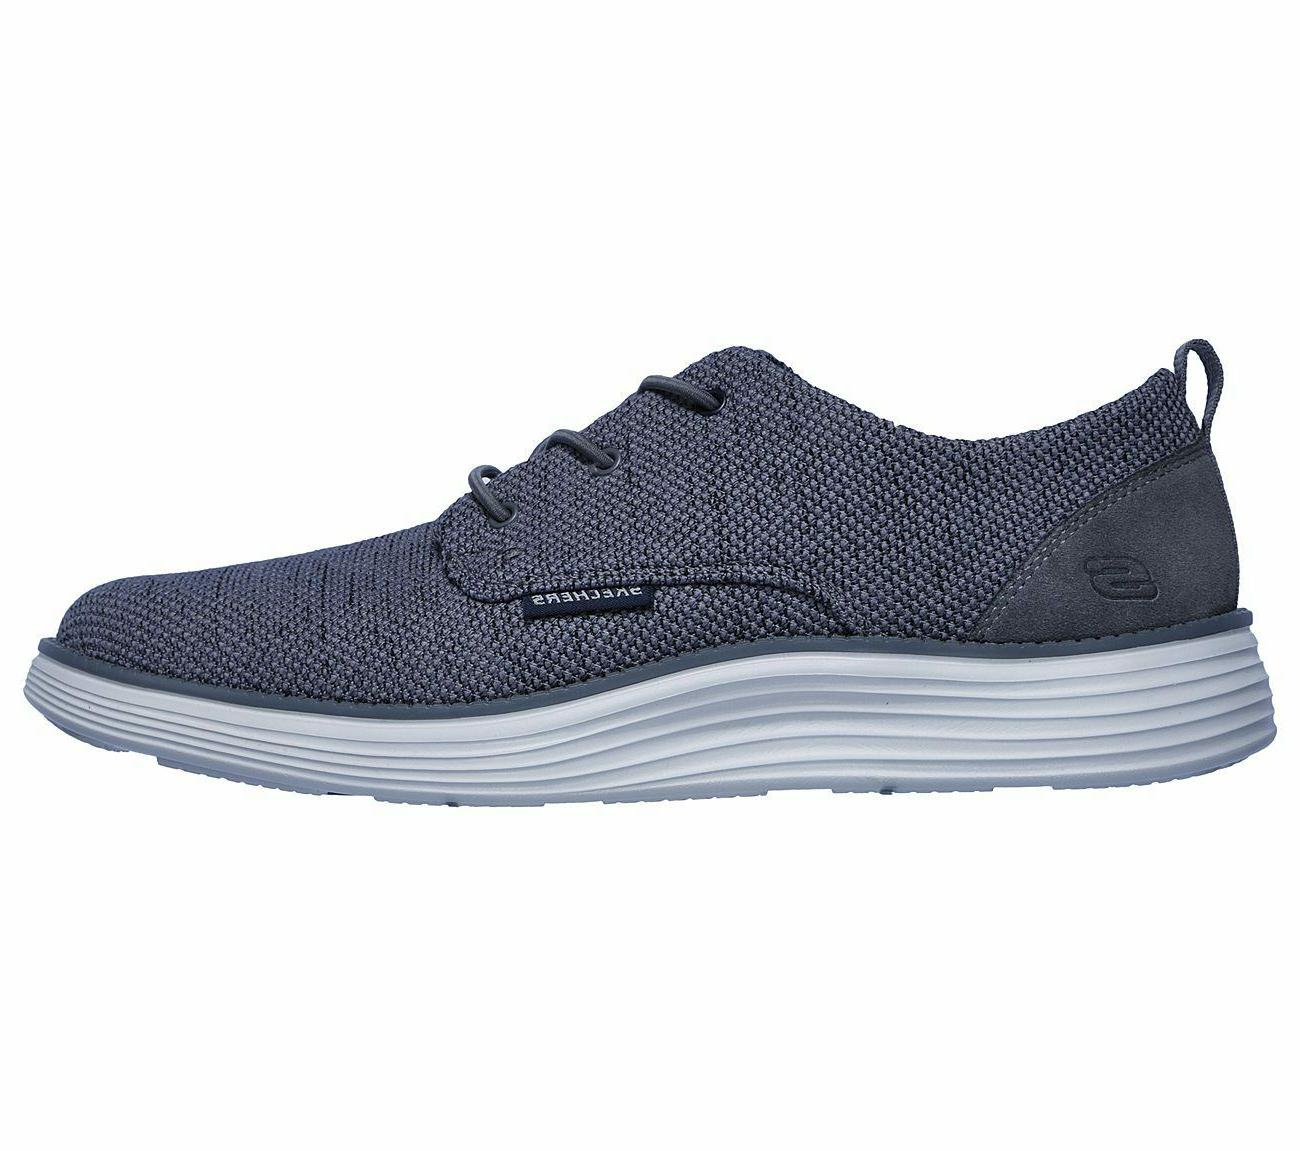 Skechers shoes Men Memory Foam Casual Comfort Soft Woven Mesh Oxford 65900